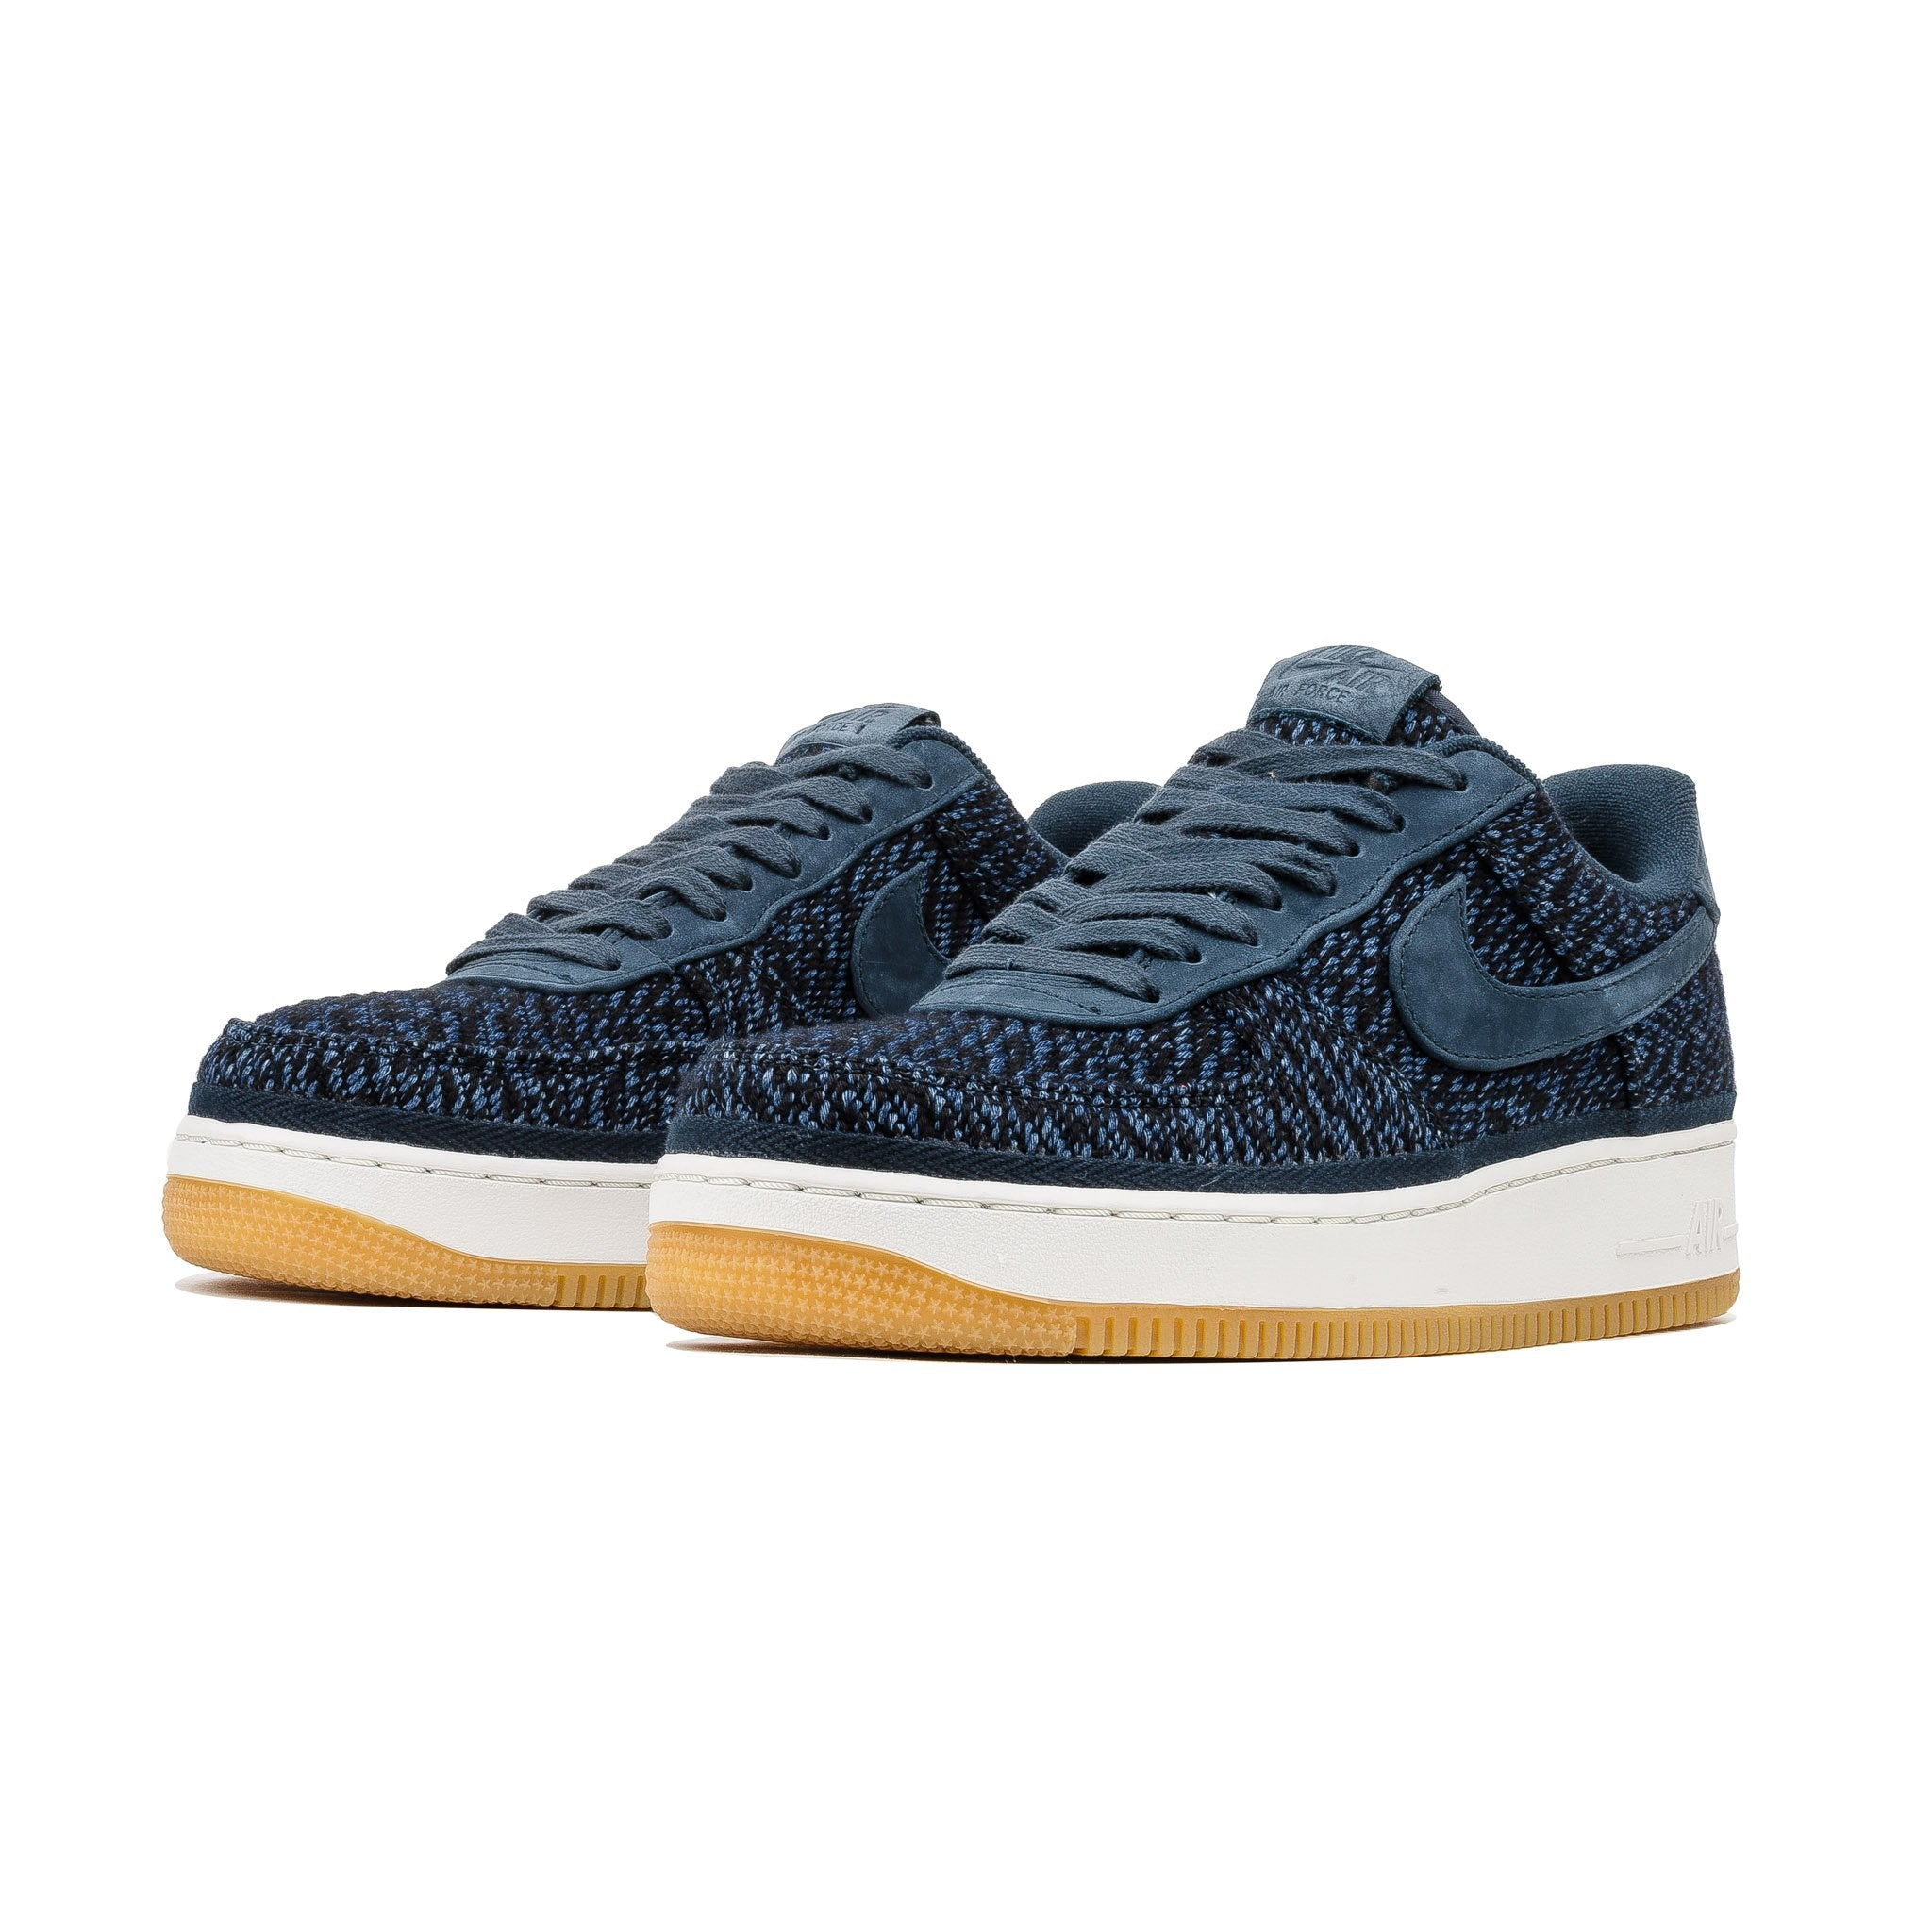 Air Force 1 '07 Indigo 917825-400 Navy